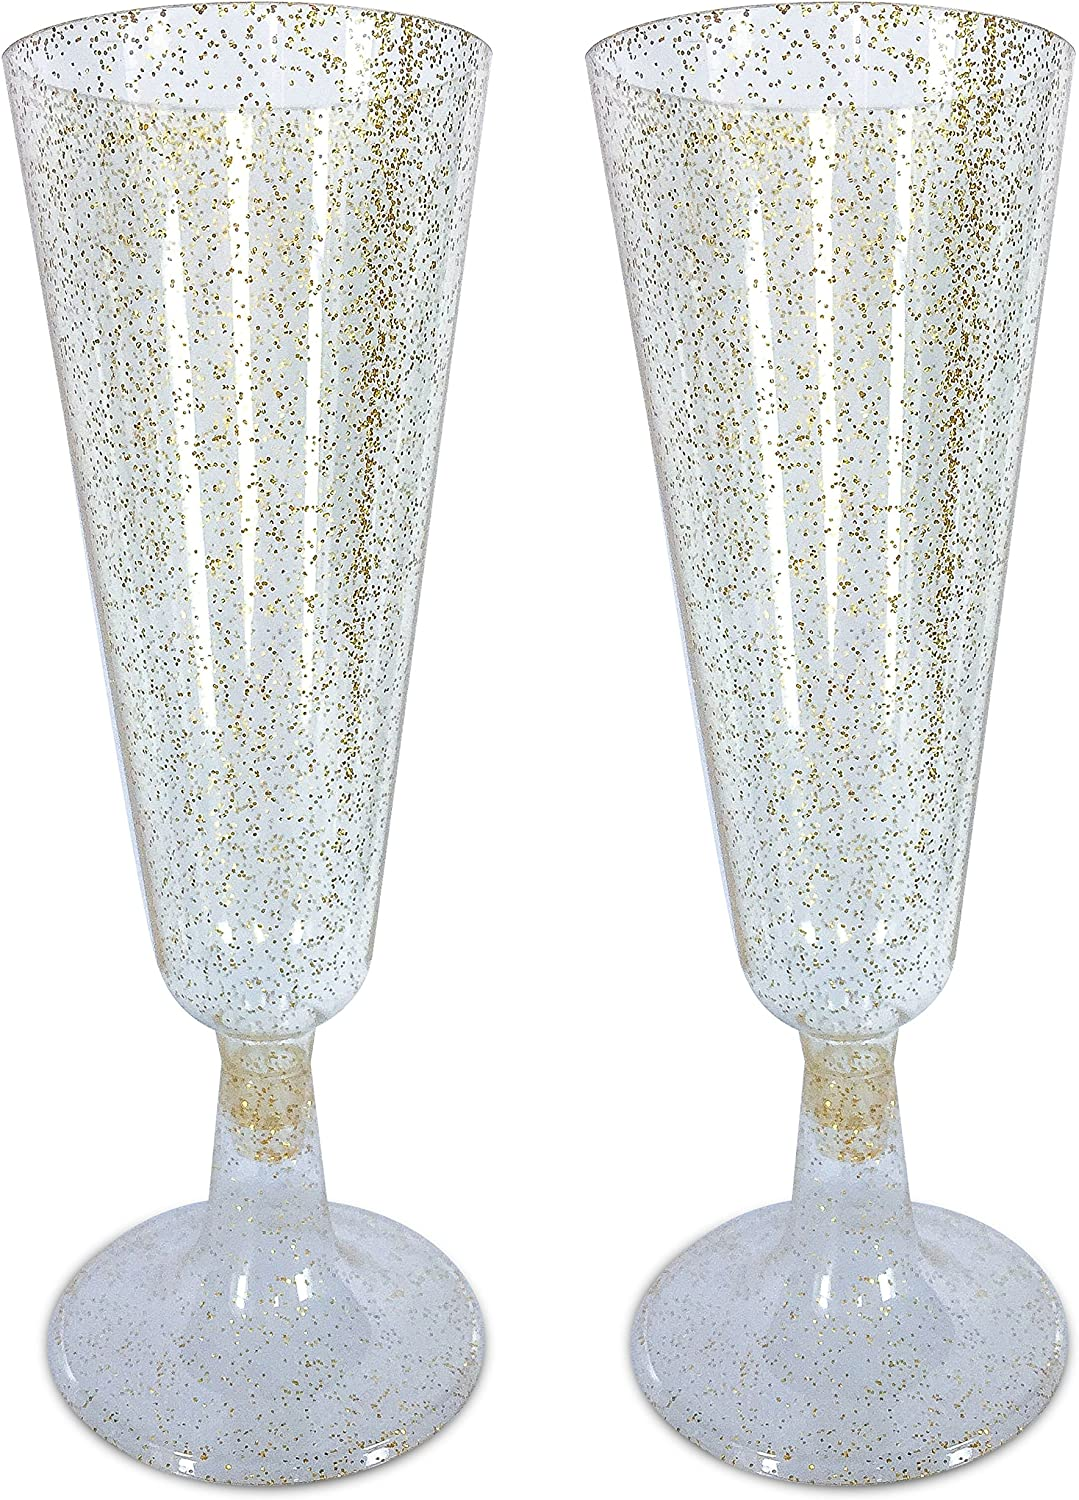 60 Pack 5 oz Glittered Wine Cocktail Disposable Plastic Cups For Weddings